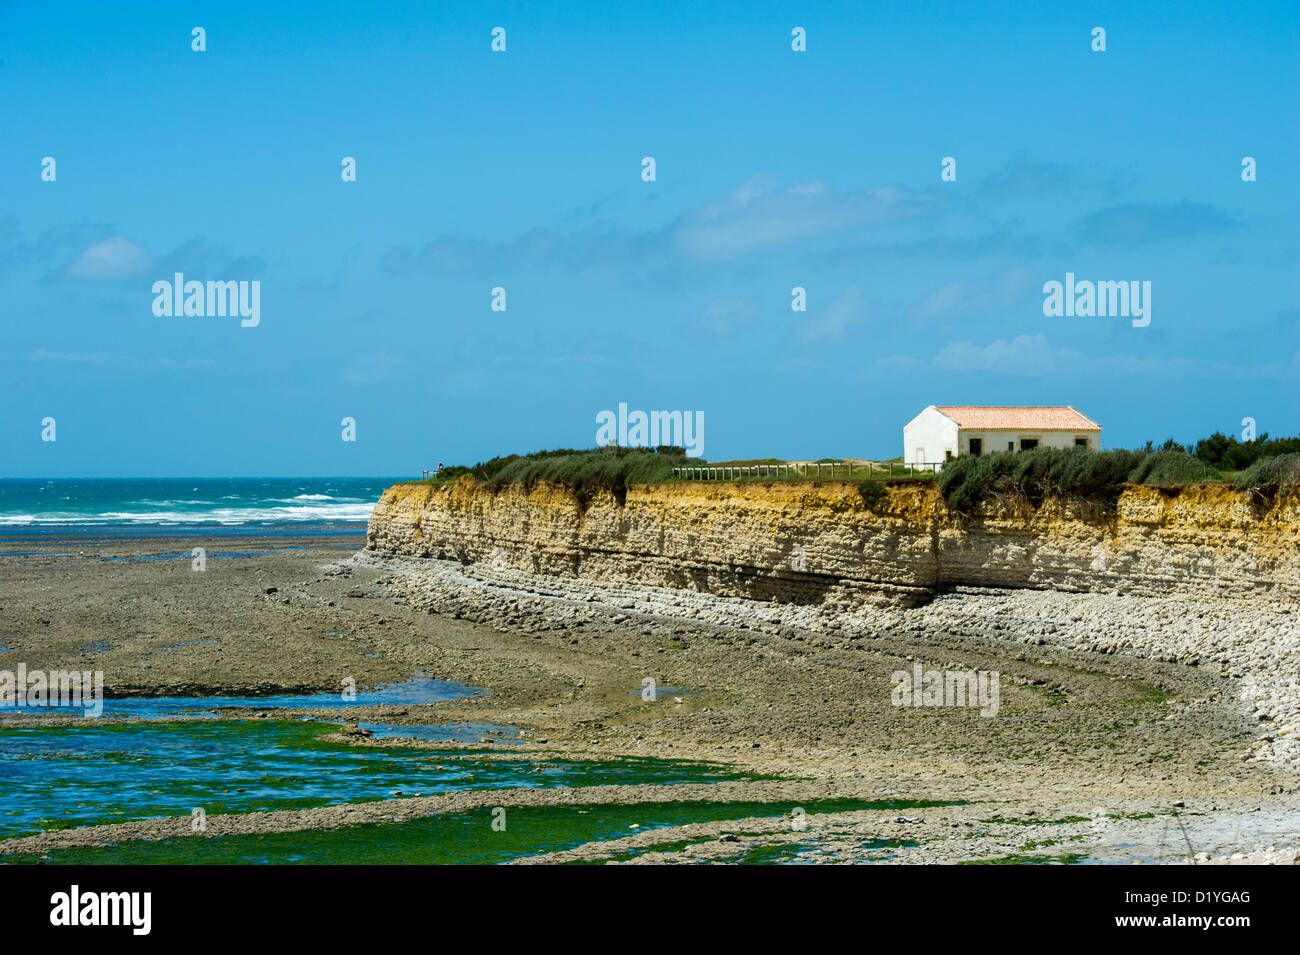 Rough sea and coast at the north cape island d'Oleron - Stock Image